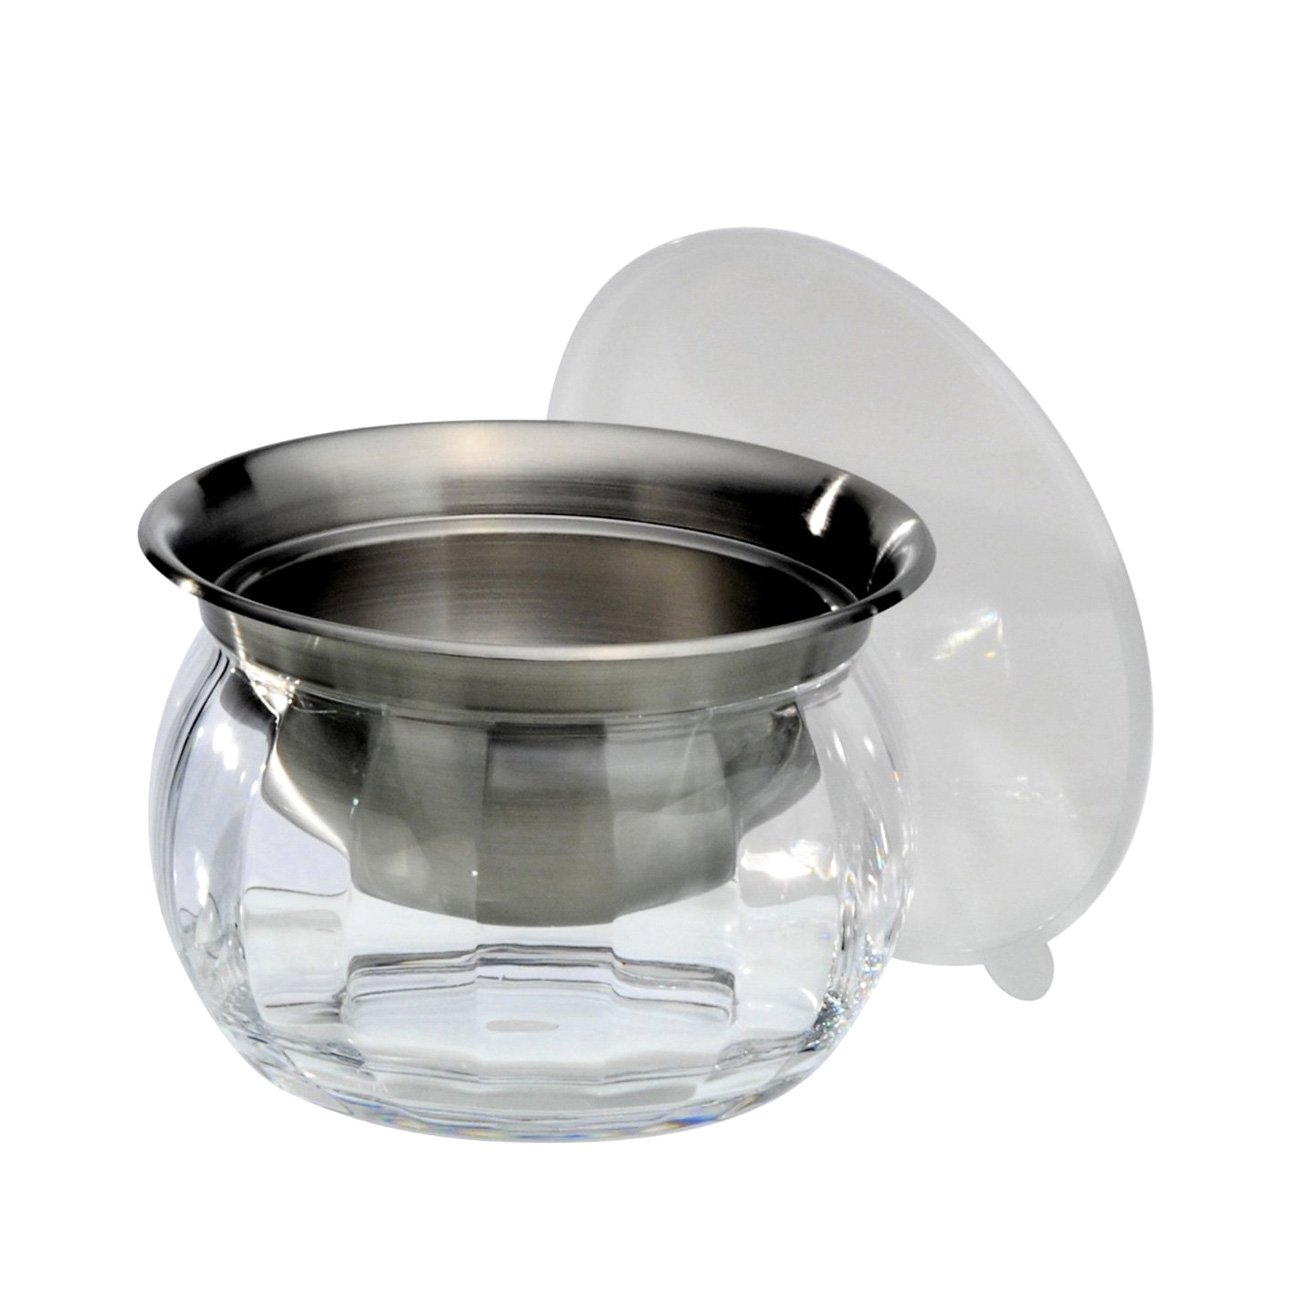 Prodyne Bowl And Dip Cup On Ice 22 Oz Stainless Steel PRODYNE ENTERPRISES IC6